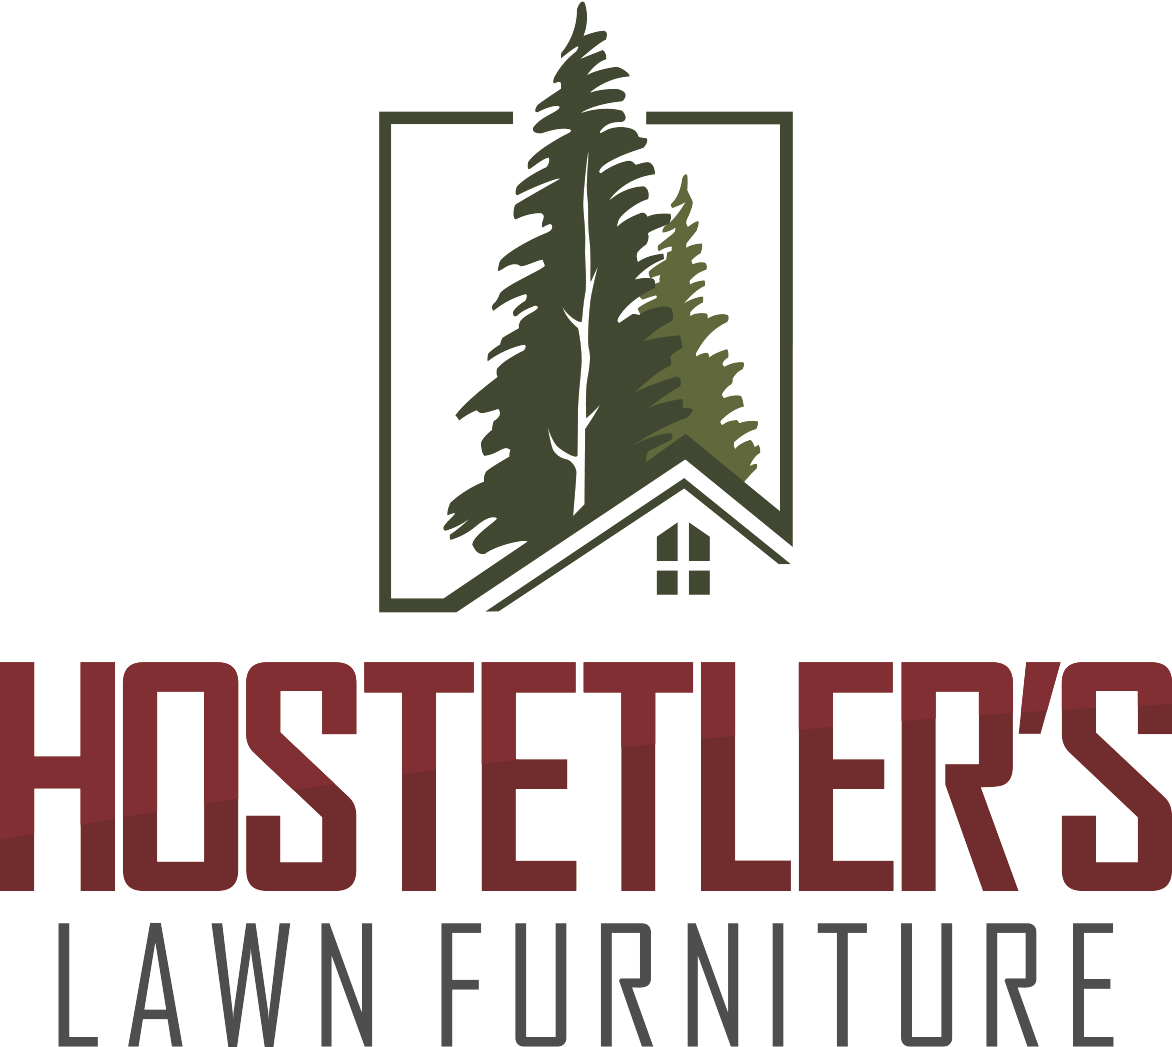 Hostetler's Lawn Furniture & Storage Sheds